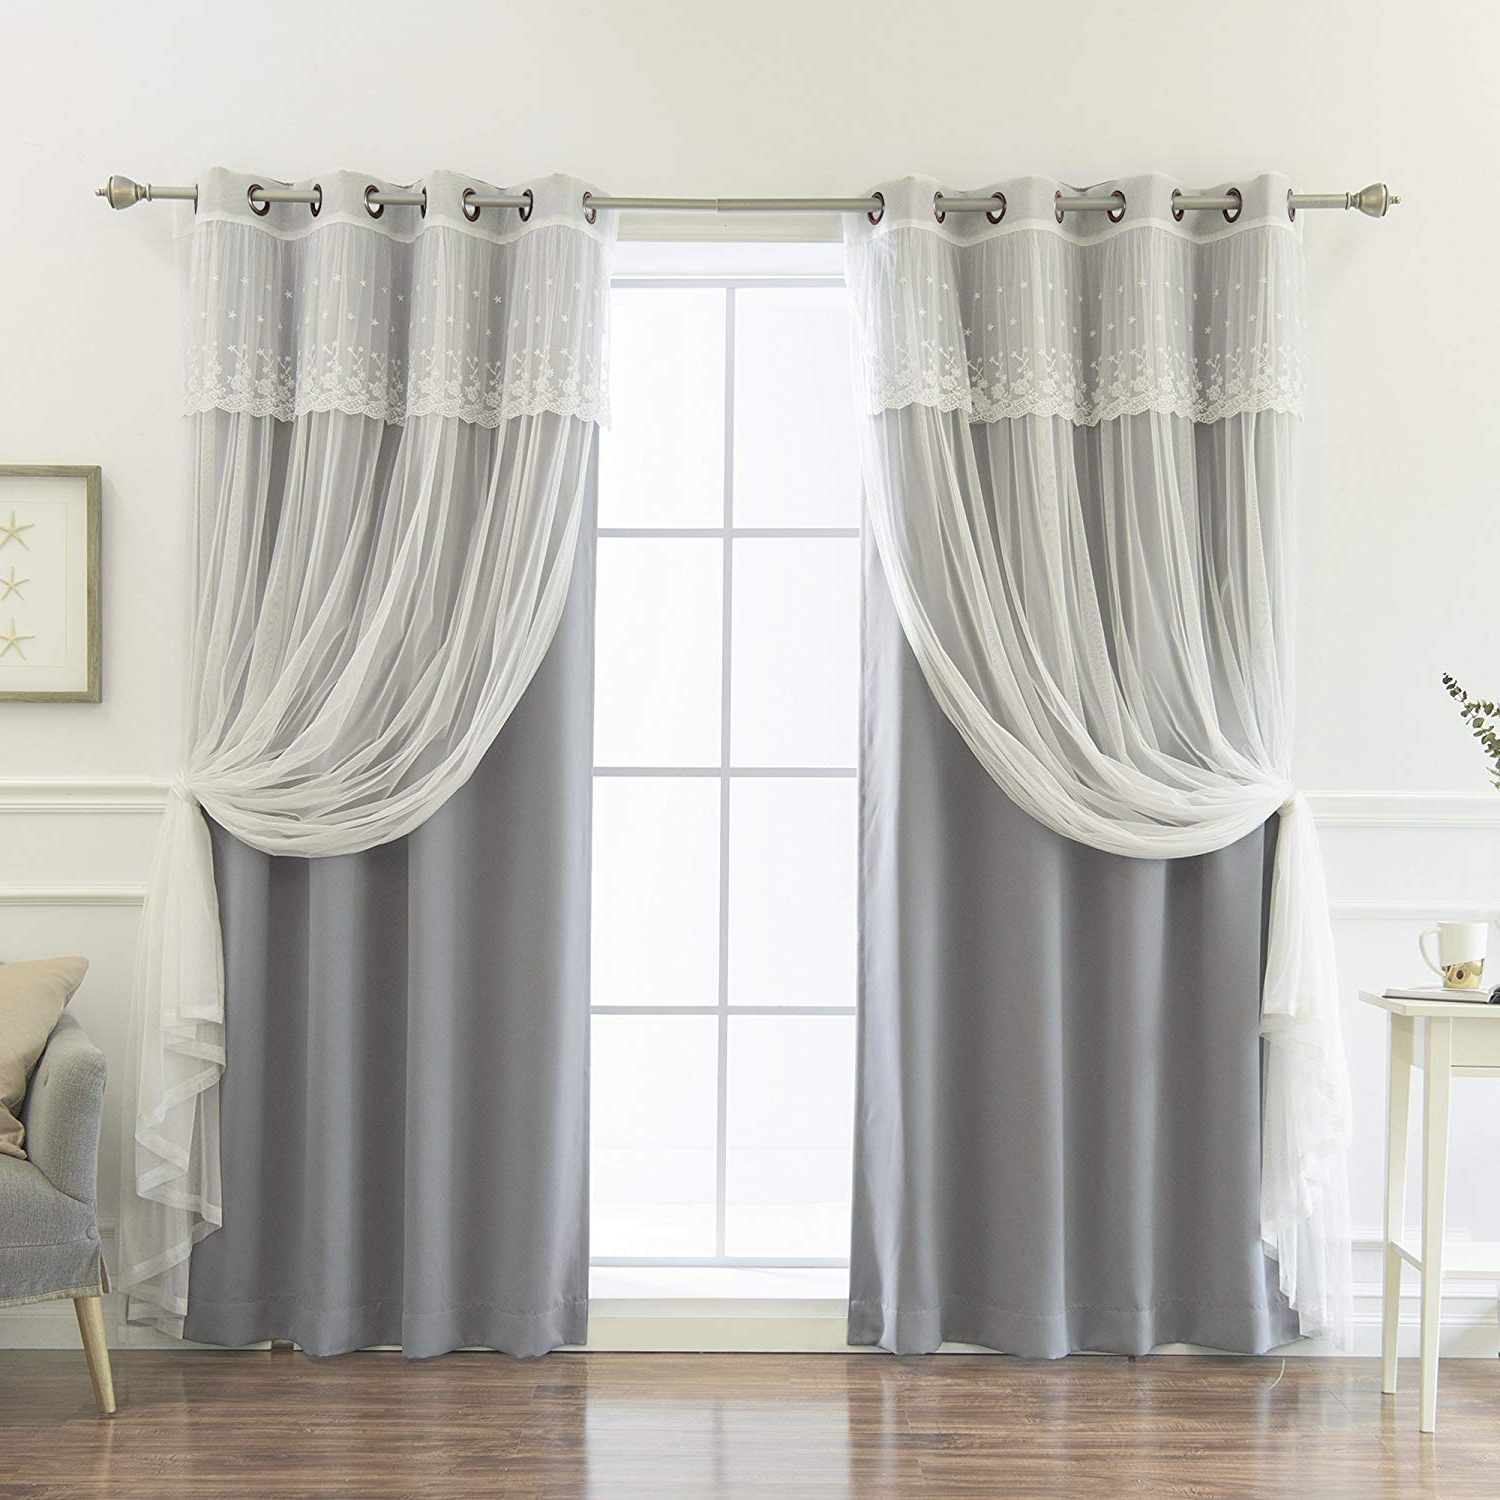 Tulle Sheer With Attached Valance And Blackout 4 Piece Curtain Panel Pairs With Well Liked Best Home Fashion Umixm Mix And Match Tulle Sheer With Attached Valance & Solid Blackout 4 Piece Curtain Set – Stainless Steel Nickel Grommet Top (View 11 of 20)